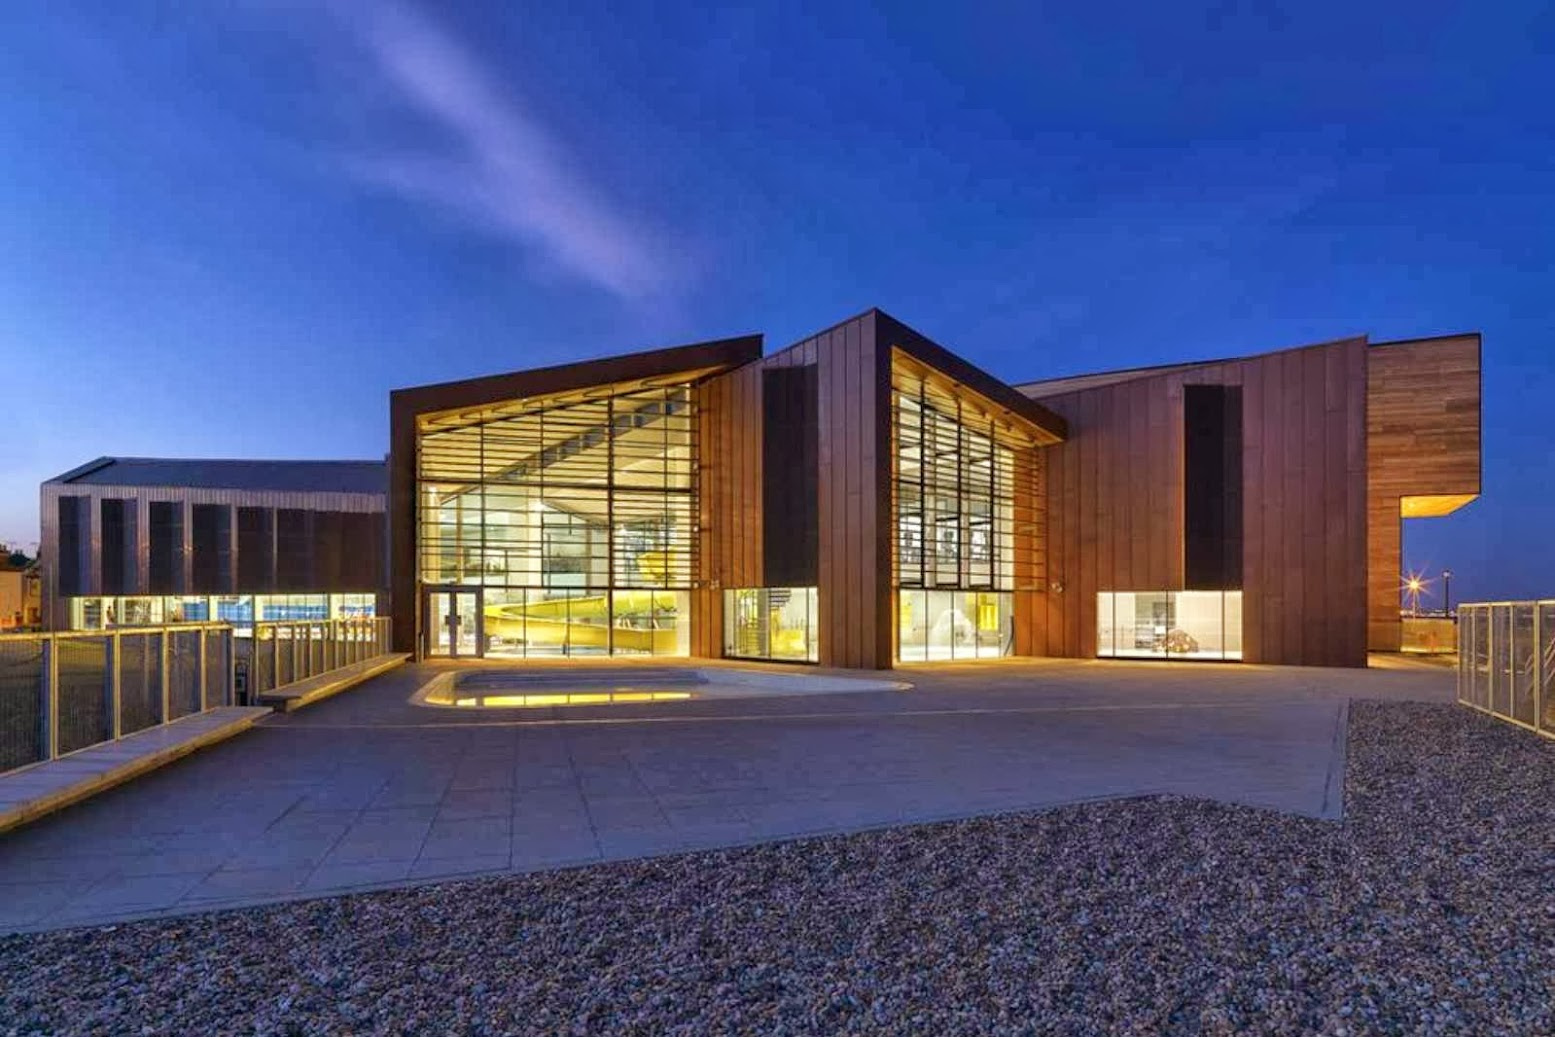 Worthing, West Sussex, Regno Unito: [SPLASHPOINT LEISURE CENTRE BY WILKINSON EYRE]